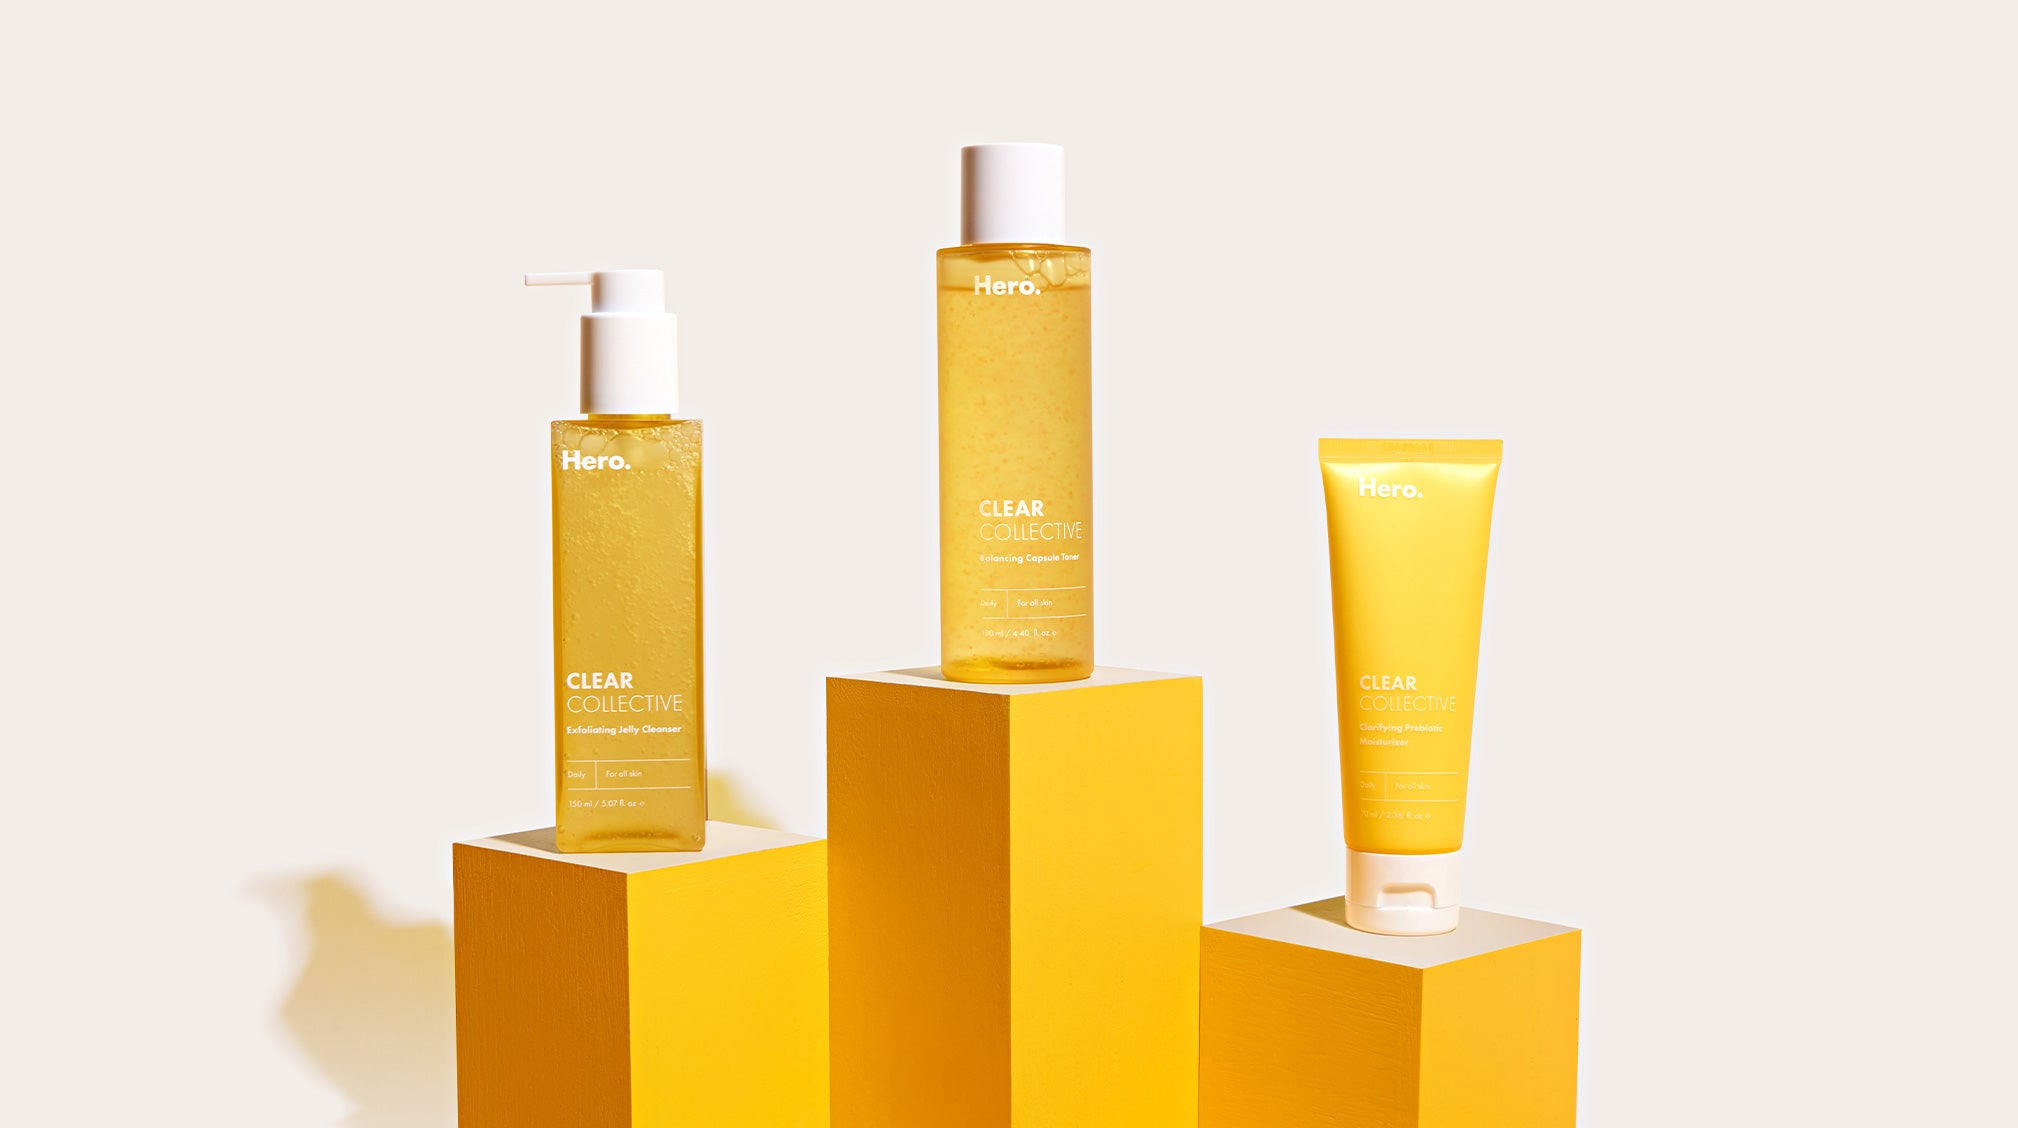 Meet Clear Collective: Your Super-Powered Skincare Set for Acne-Prone Skin